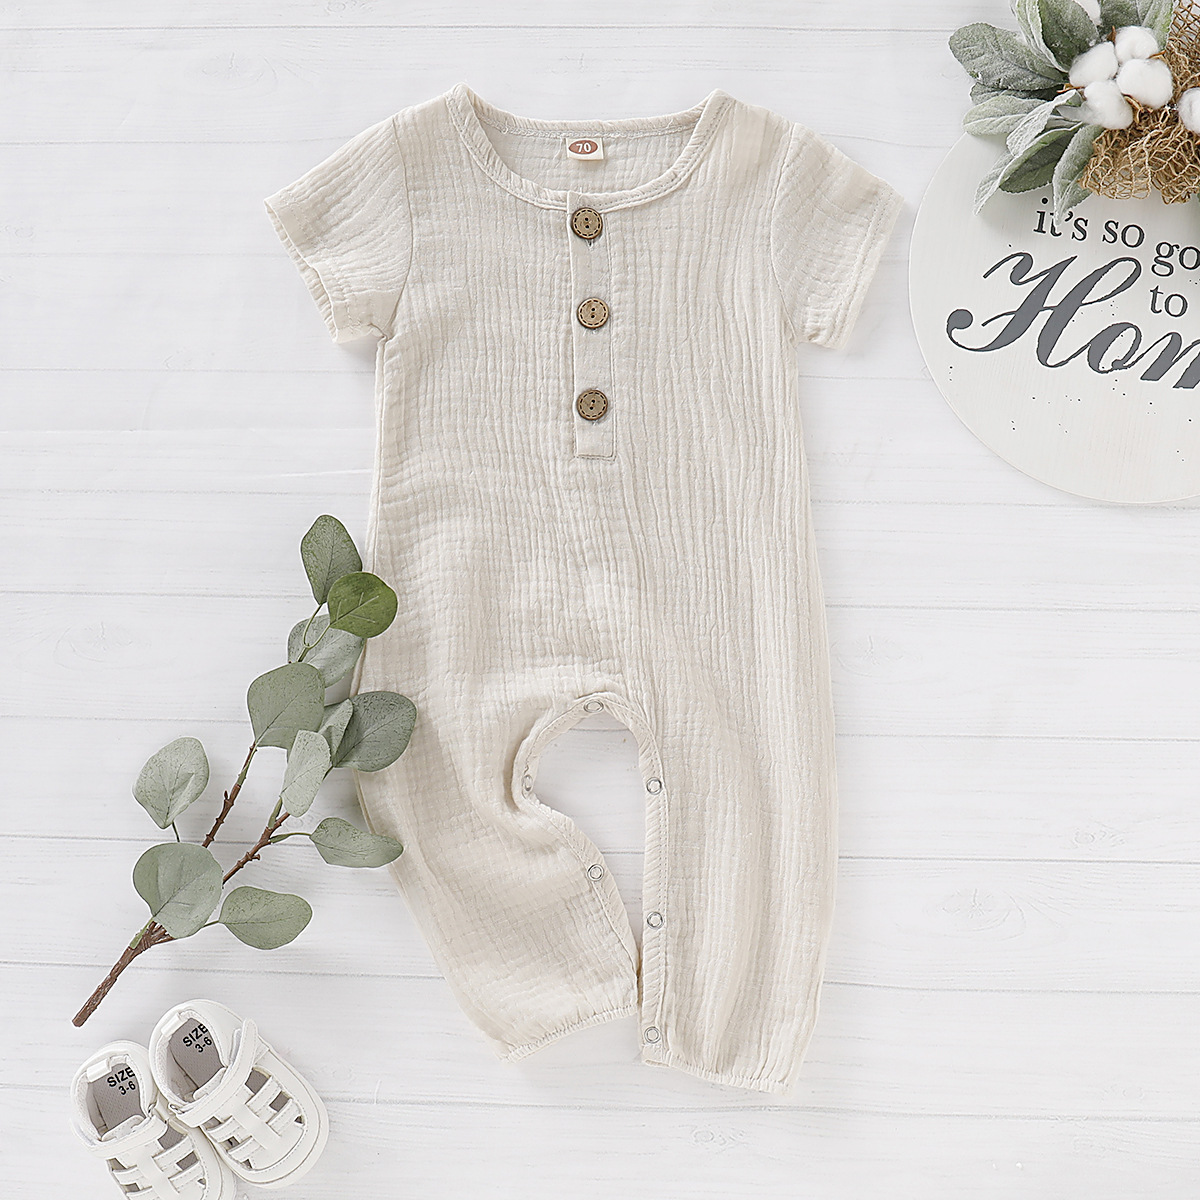 New arrivals Summer Infant Baby Boys Girls   Rompers   Short Sleeve O-Neck Ruffles Solid   Romper   Toddler Cotton Jumpsuit outfits